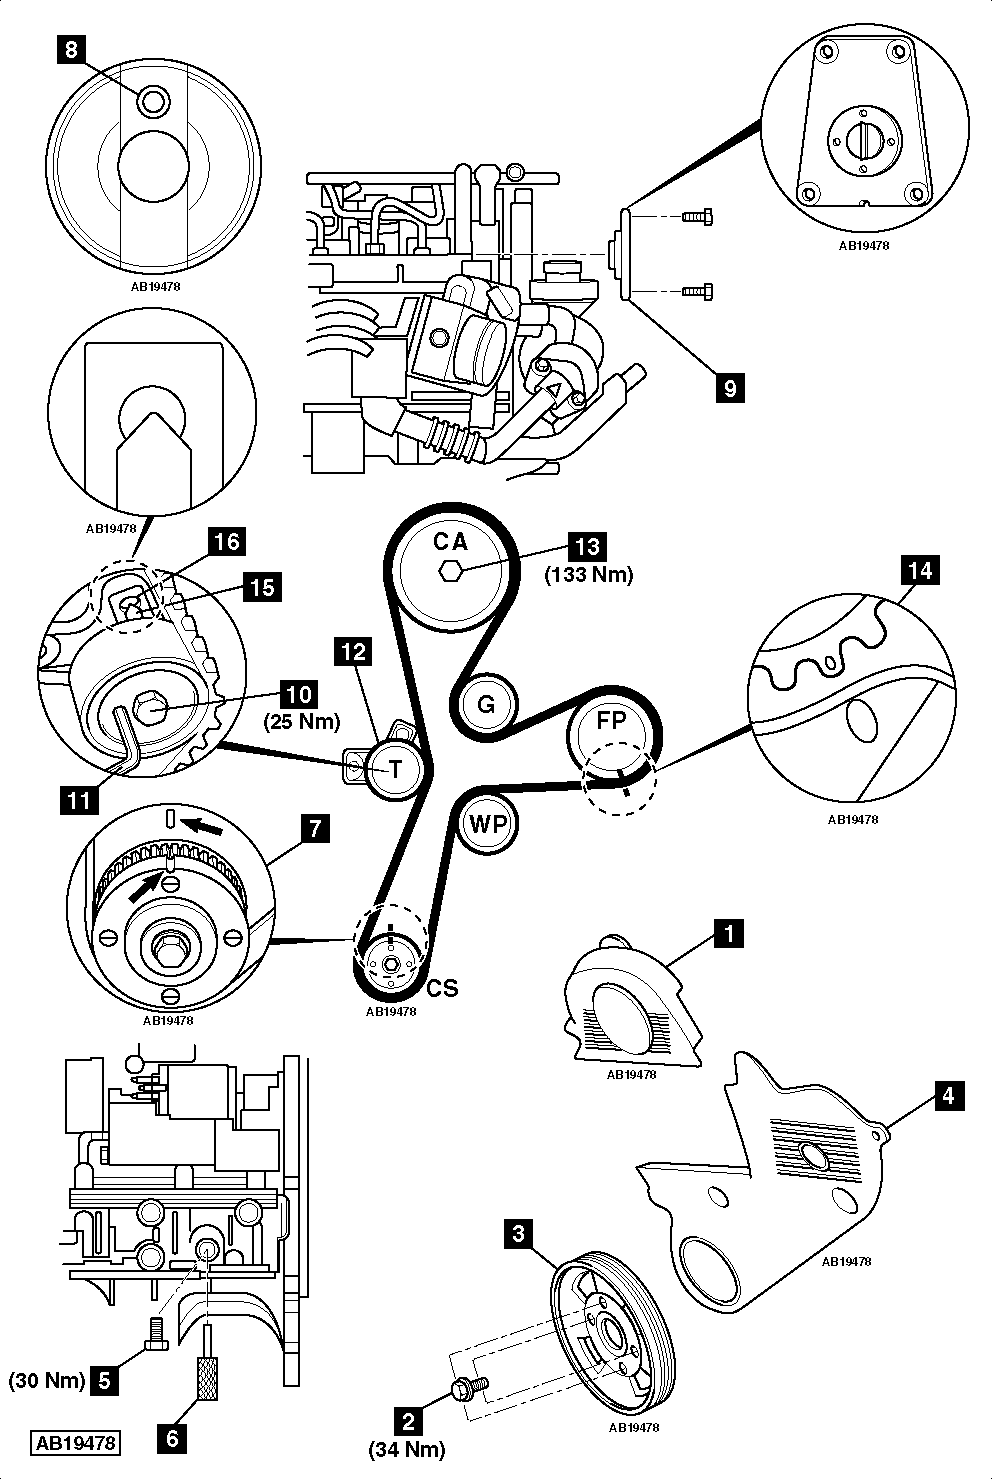 ShowAssembly in addition 2007 Chevrolet Equinox Serpentine Belt Diagram also Maintenance schedule 357 in addition 1996 Chevy 1500 Wiring Diagram as well Ajuste  pleto Chevrolet Optra 2007 16l. on 2017 chevrolet cruze